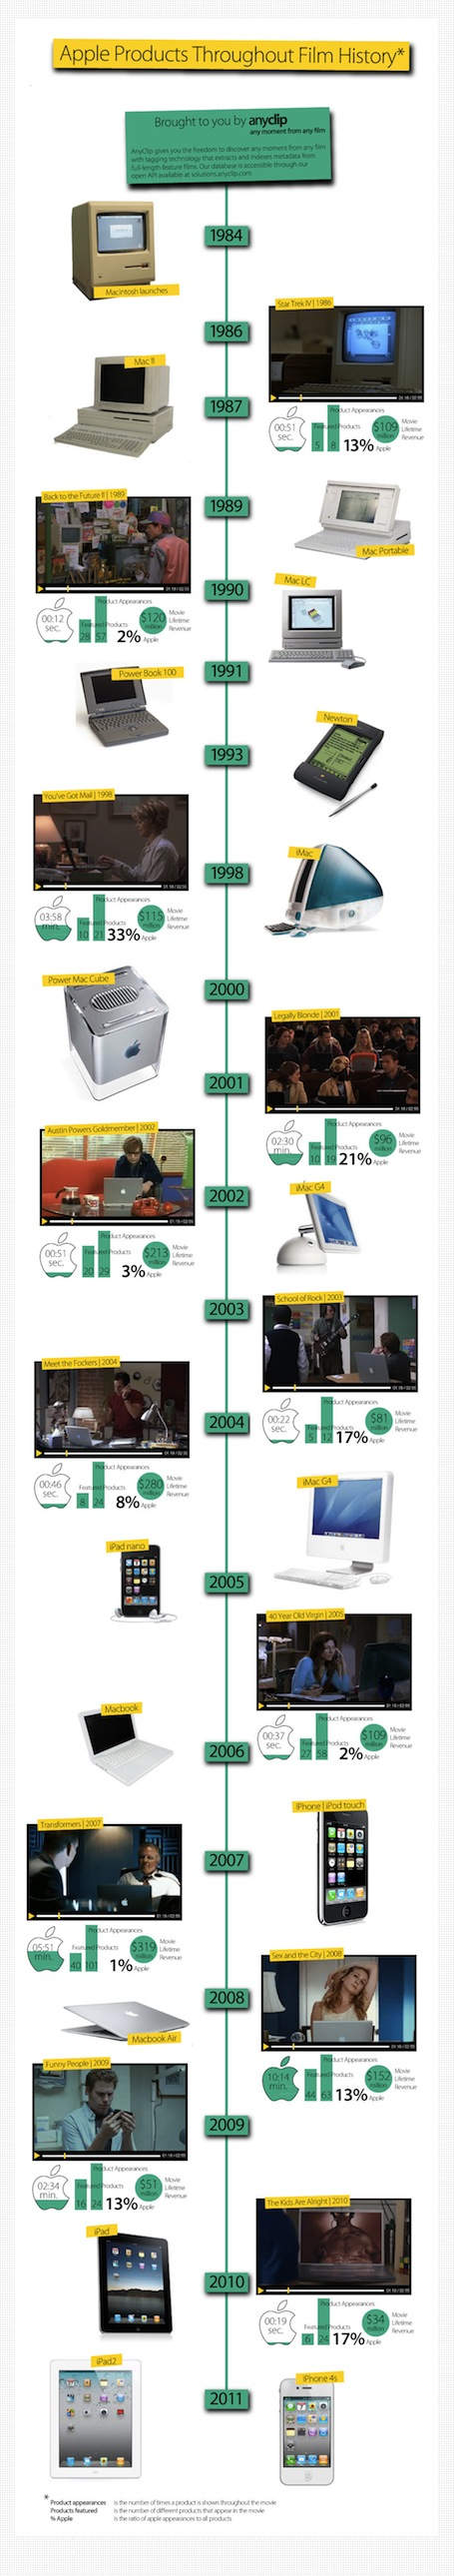 Evolution of Apple products in the film industry Apple